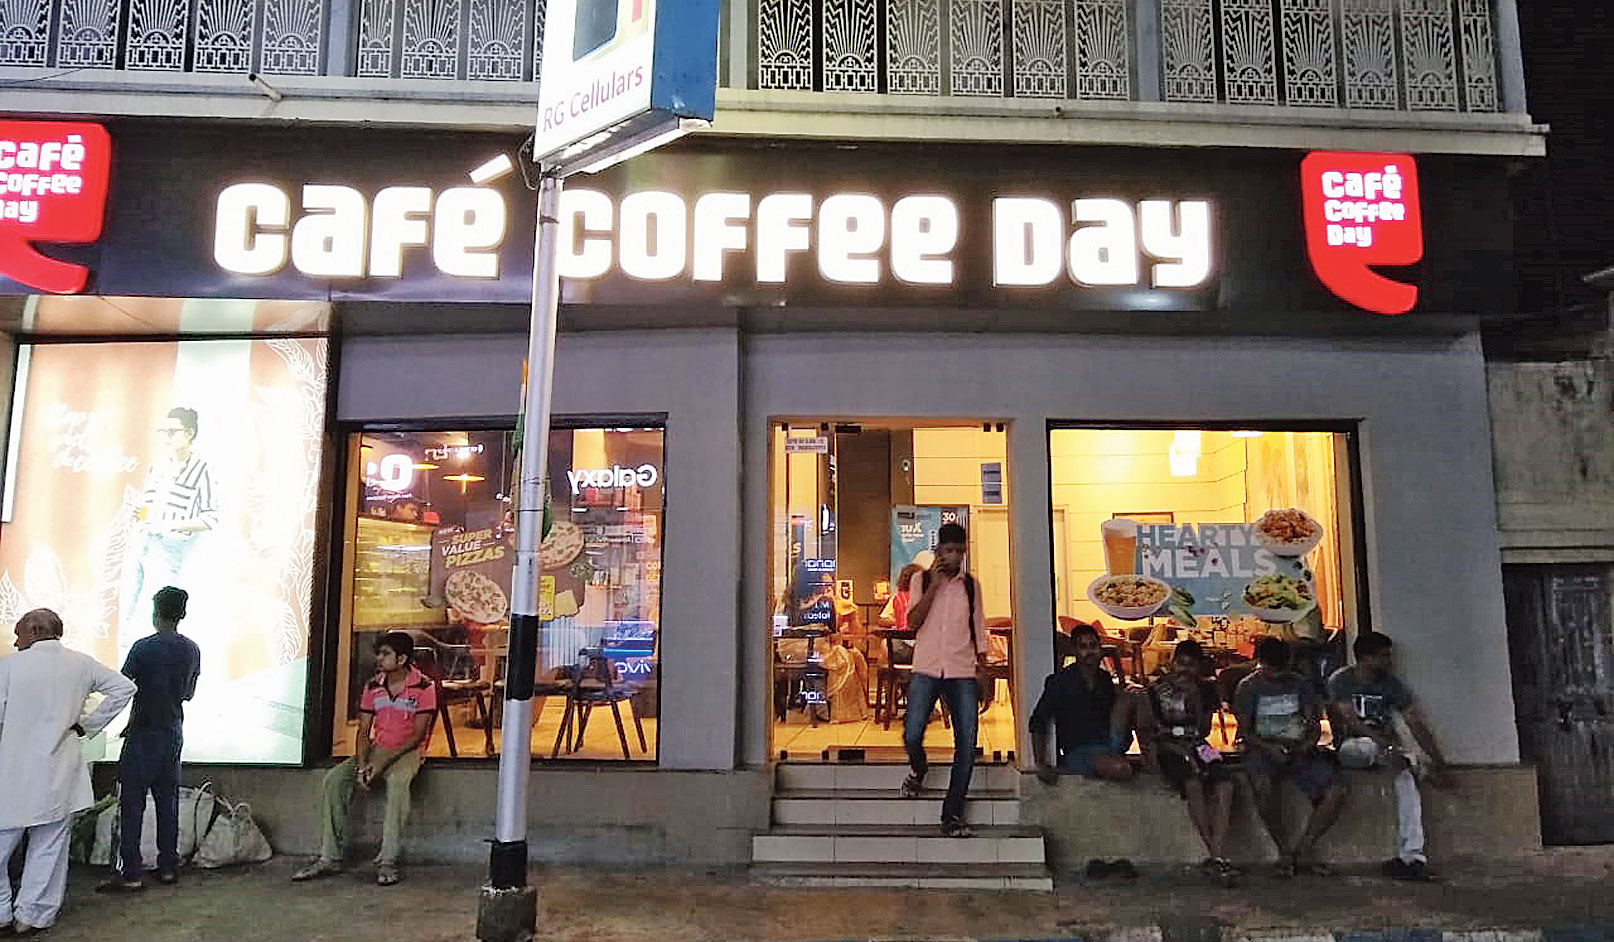 The Café Coffee Day store at Golpark, Calcutta